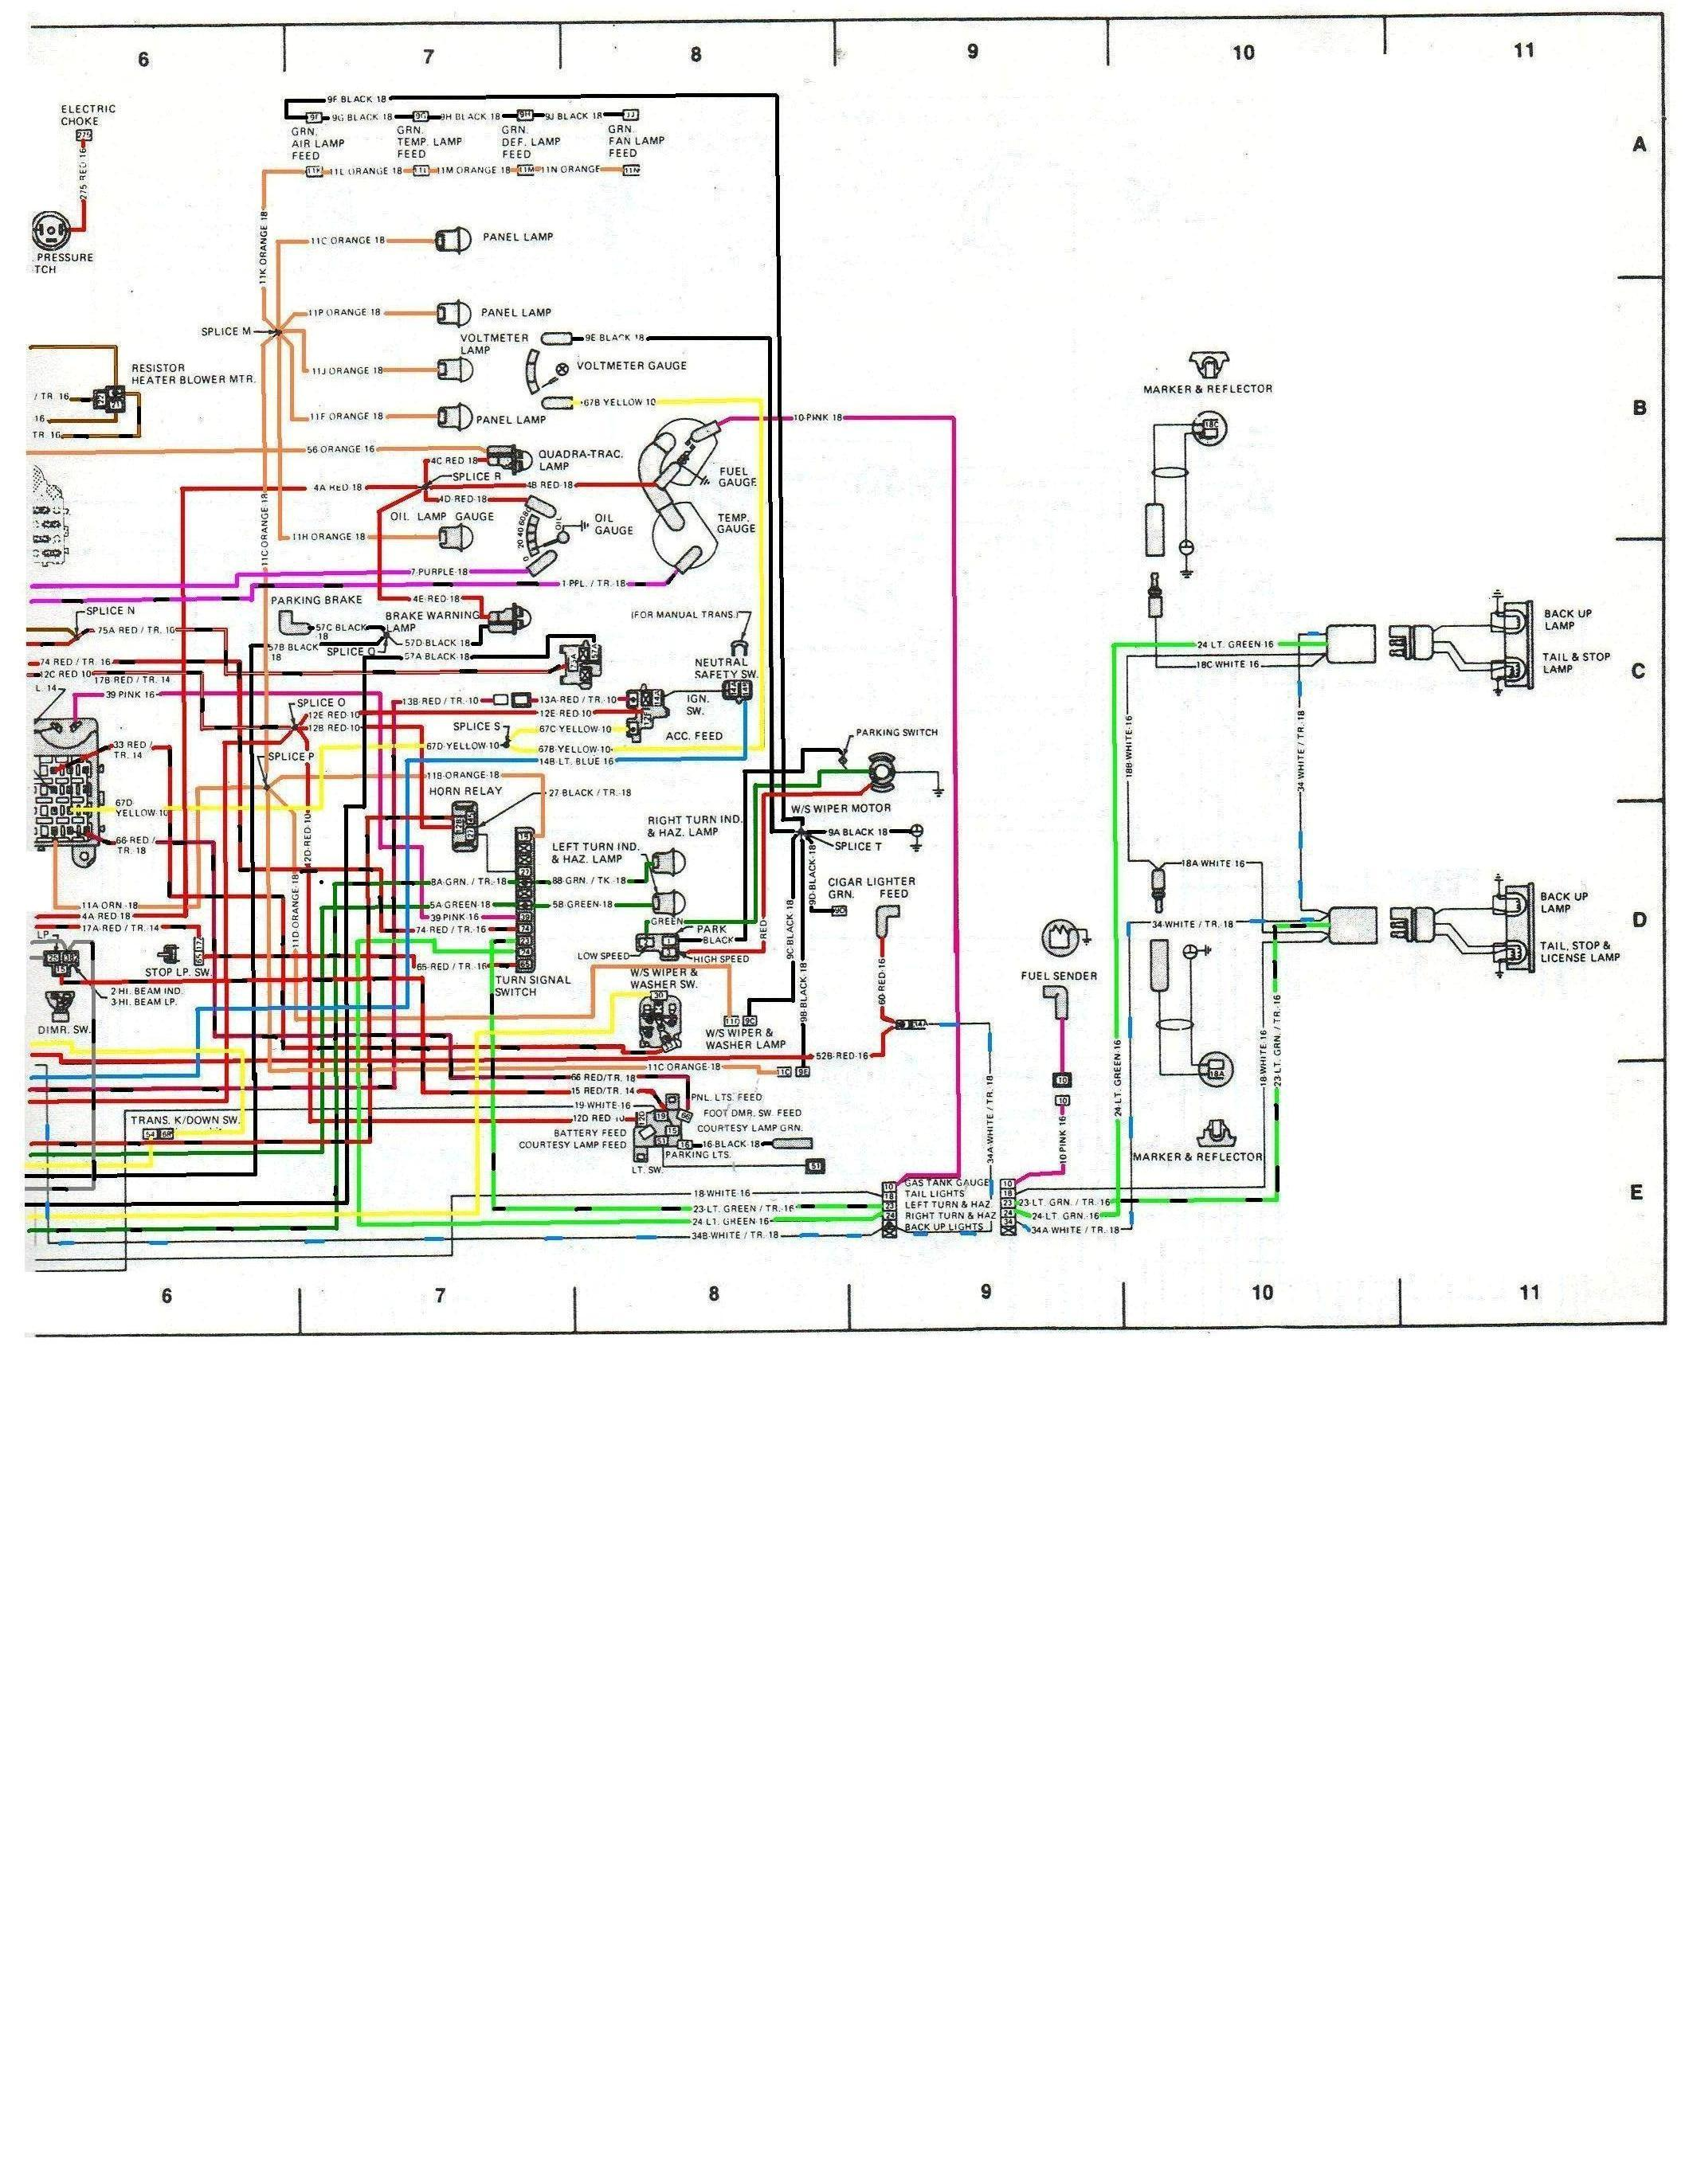 77 cj7 wiring diagram diagram base website wiring diagram -  venndiagramcomparing.museumreloaded.it  diagram base website full edition - museumreloaded.it